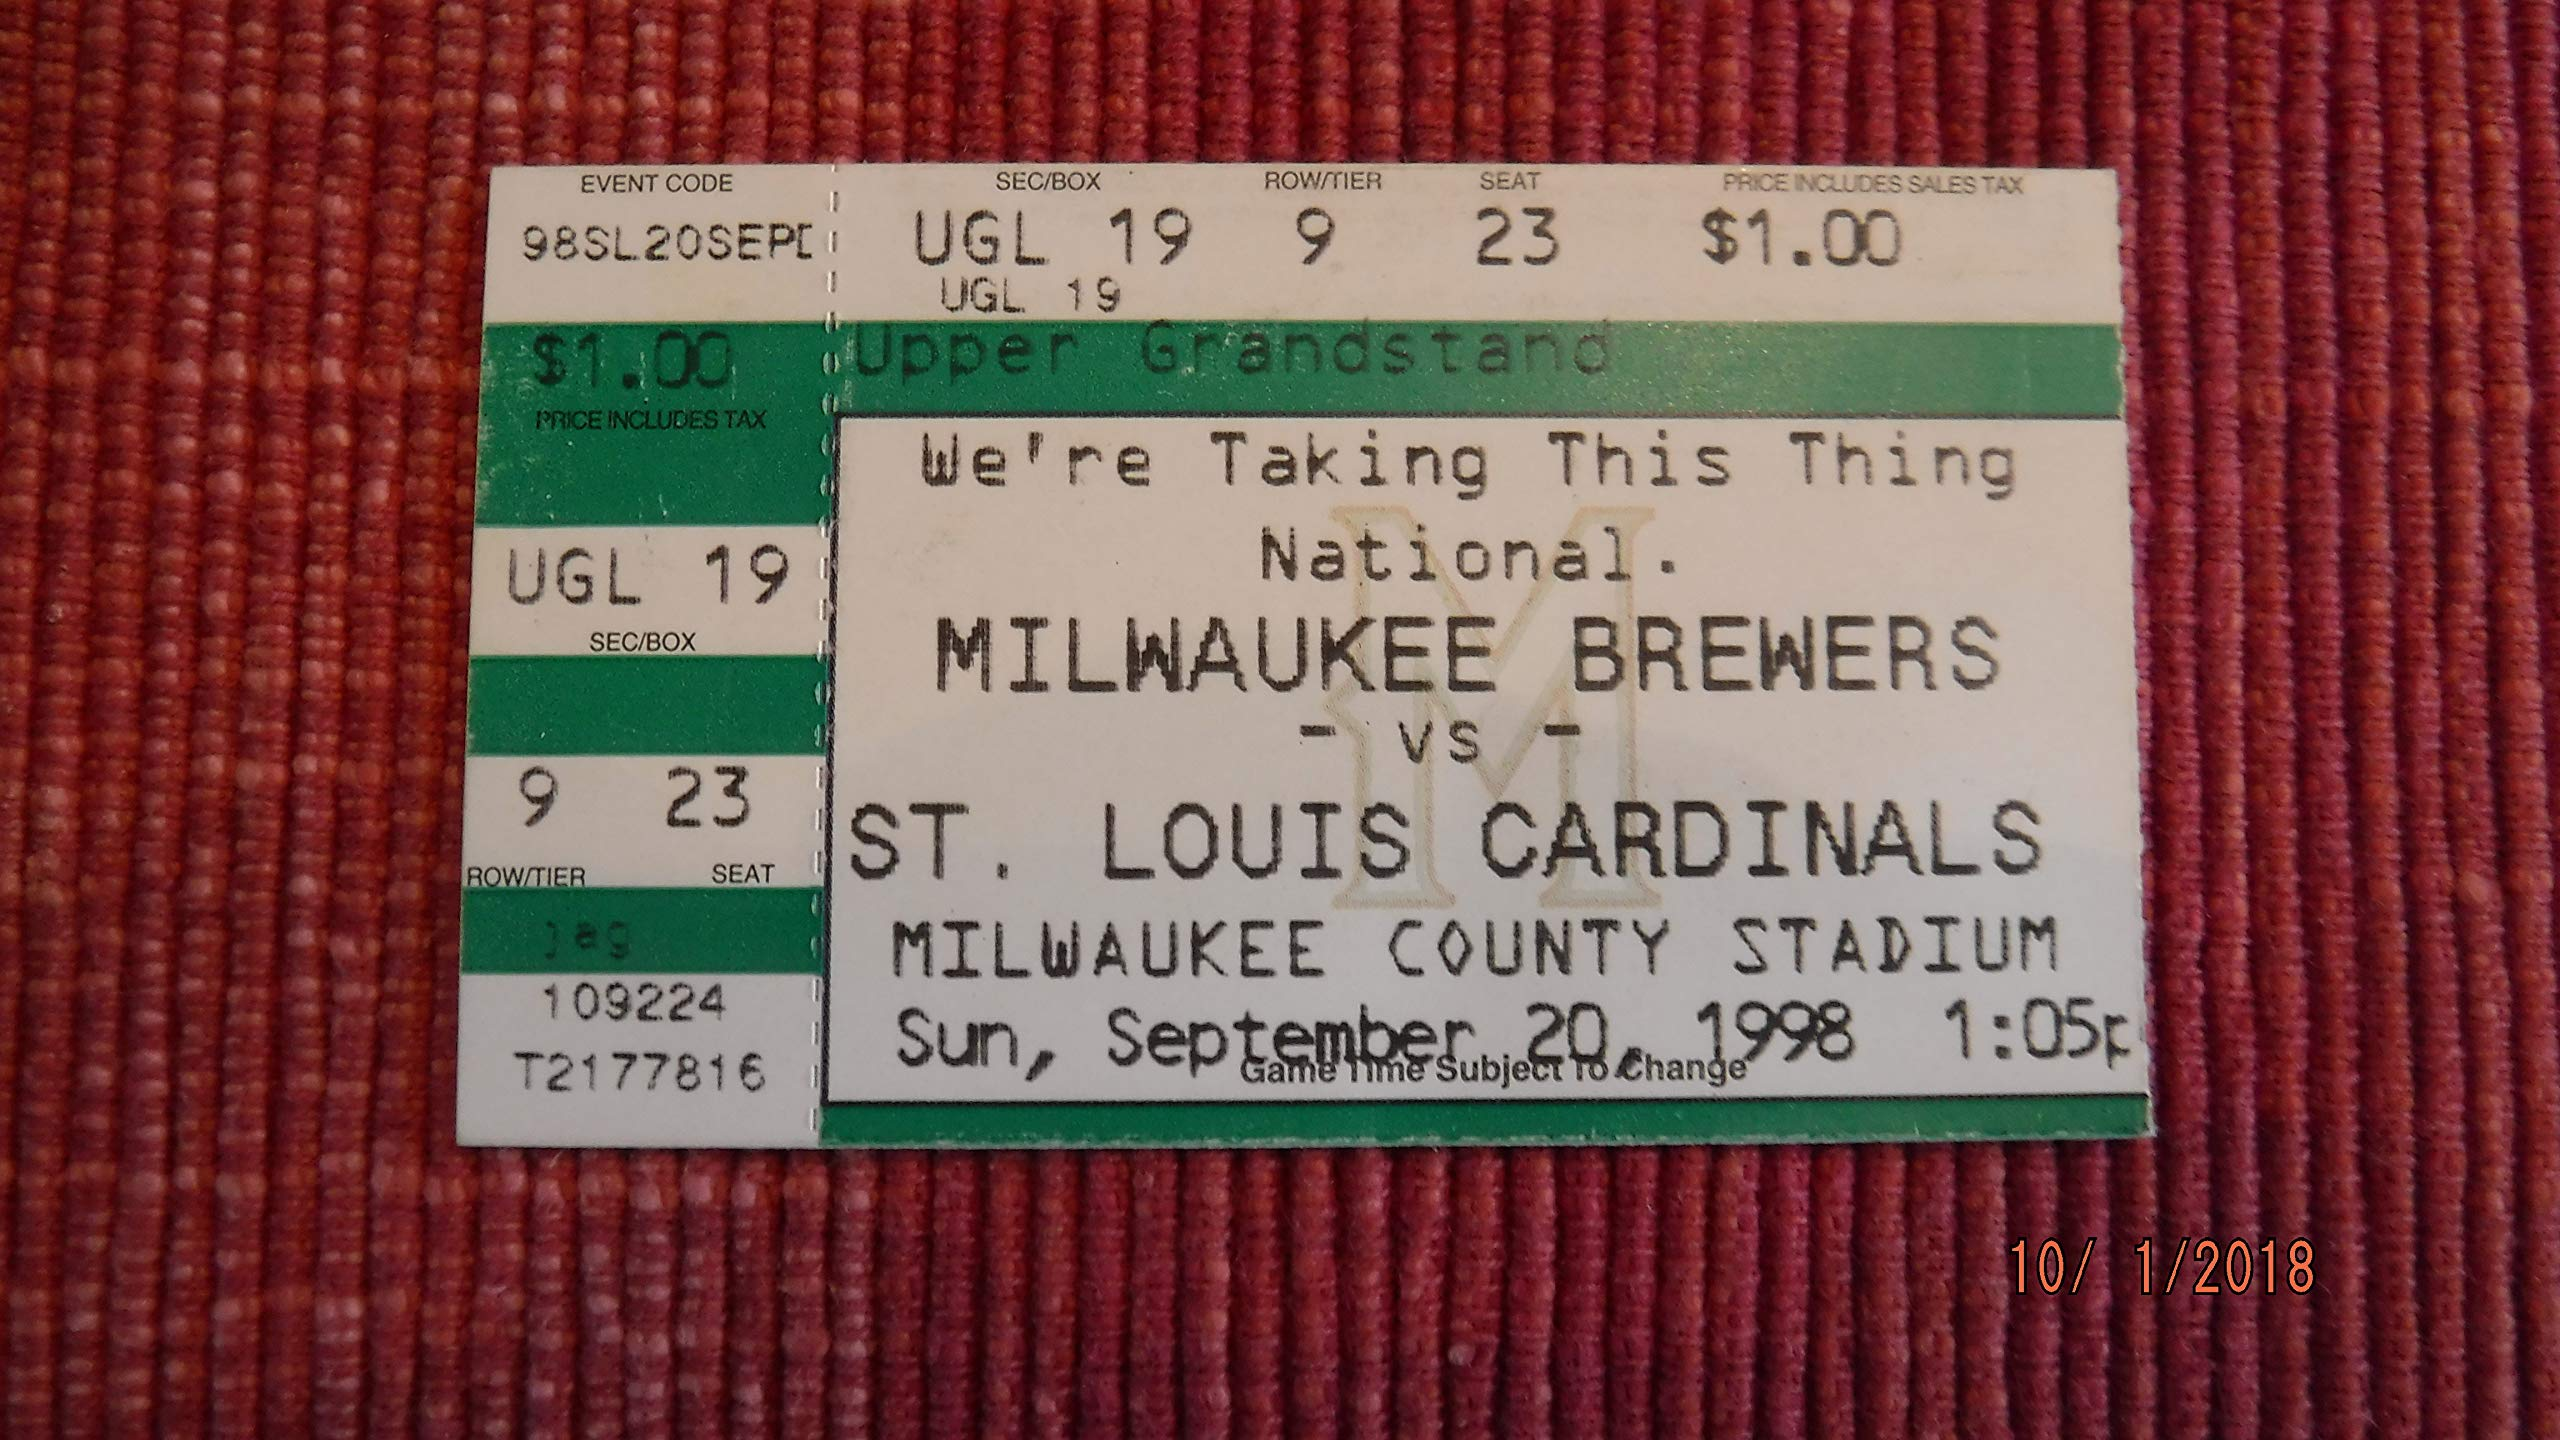 MARK McGWIRE Home Run #65 Ticket Stub (Sept. 20, 1998)